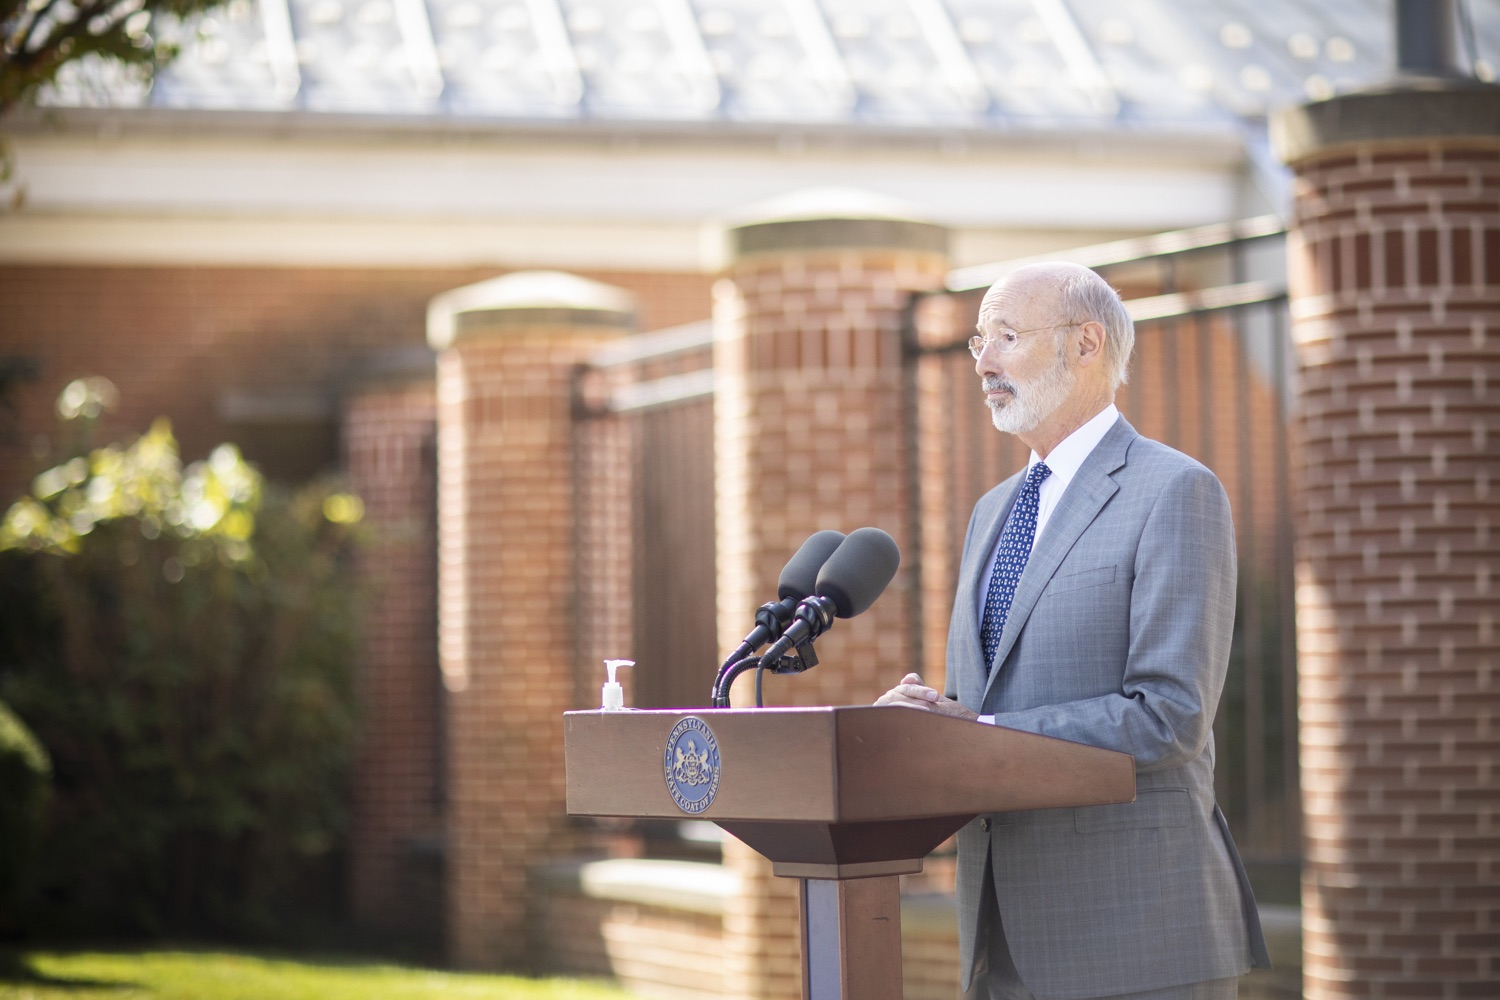 "<a href=""https://filesource.wostreaming.net/commonwealthofpa/photo/18306_gov_aca_dz_017.jpg"" target=""_blank"">⇣ Download Photo<br></a>Pennsylvania Governor Tom Wolf speaking with the press.  Governor Tom Wolf today amplified his call to protect the ACA and provide health care for all amid threats as the US Senate Judiciary Committee hearings to confirm conservative Judge Amy Coney Barrett to the Supreme Court begin next week and the pandemic ramps up across the country. York, PA  October 8, 2020"